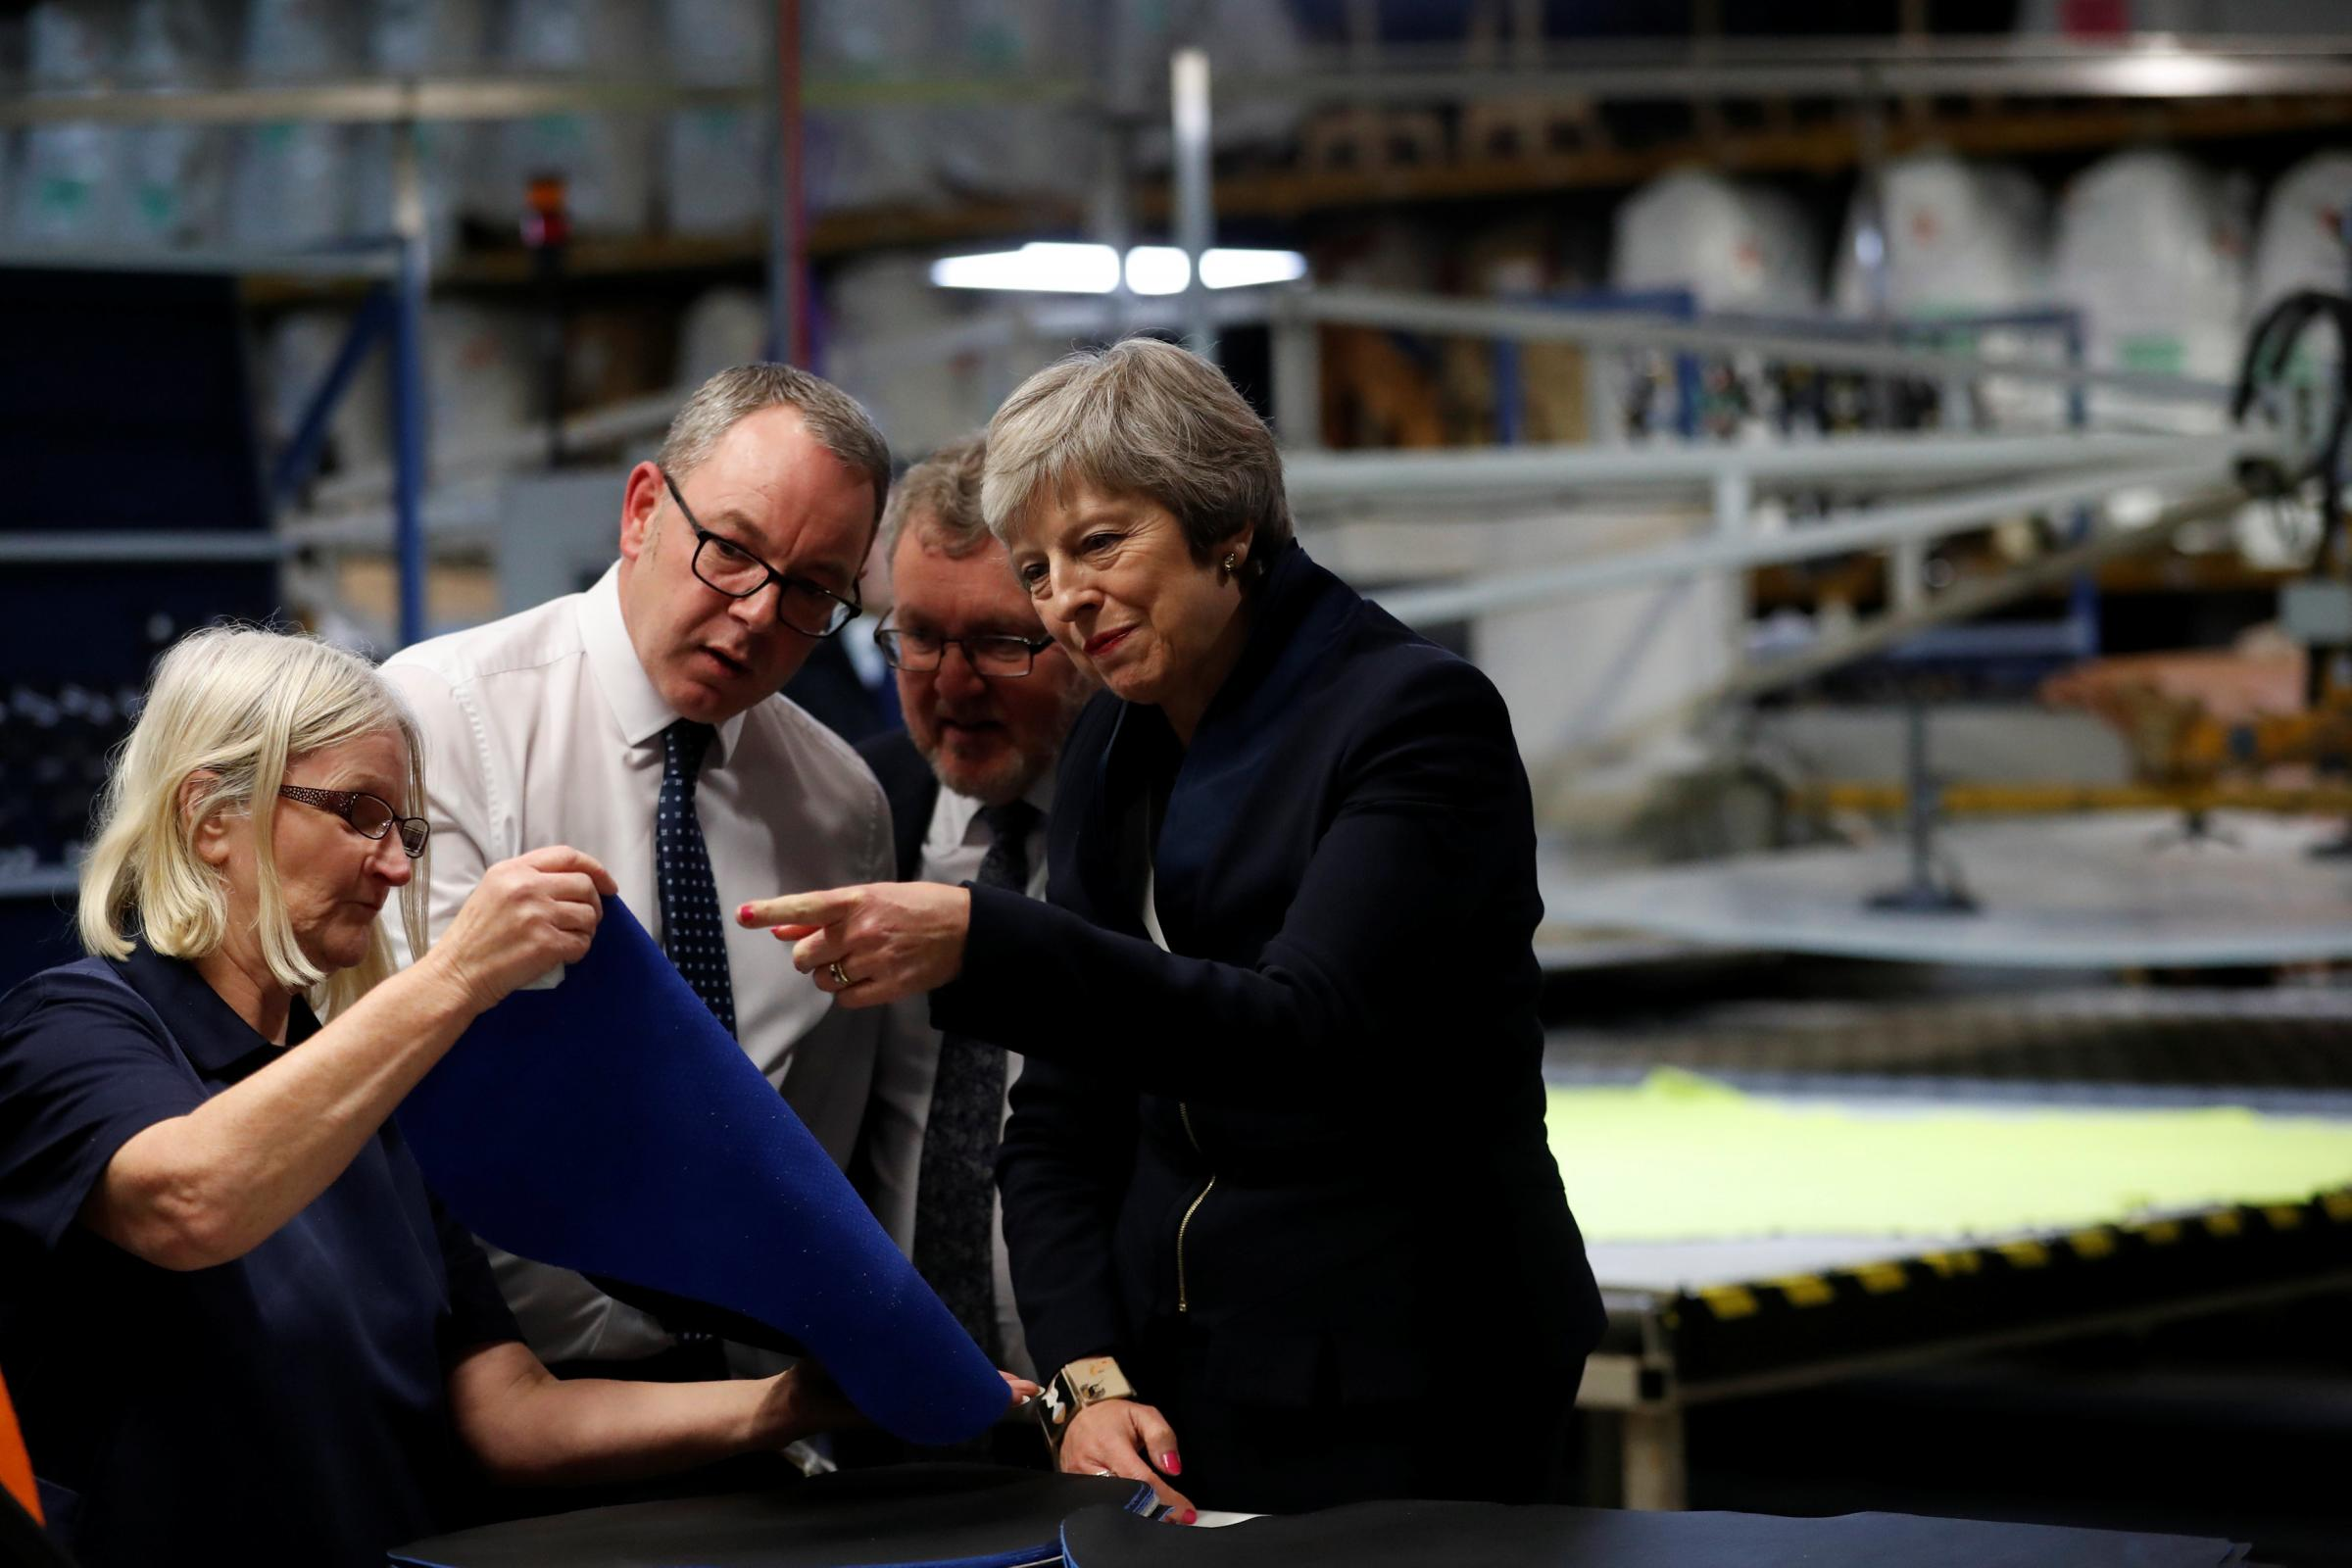 It is clear Theresa May, who shut The National our of her press conference in Bridge of Weir, is becoming increasingly panicked